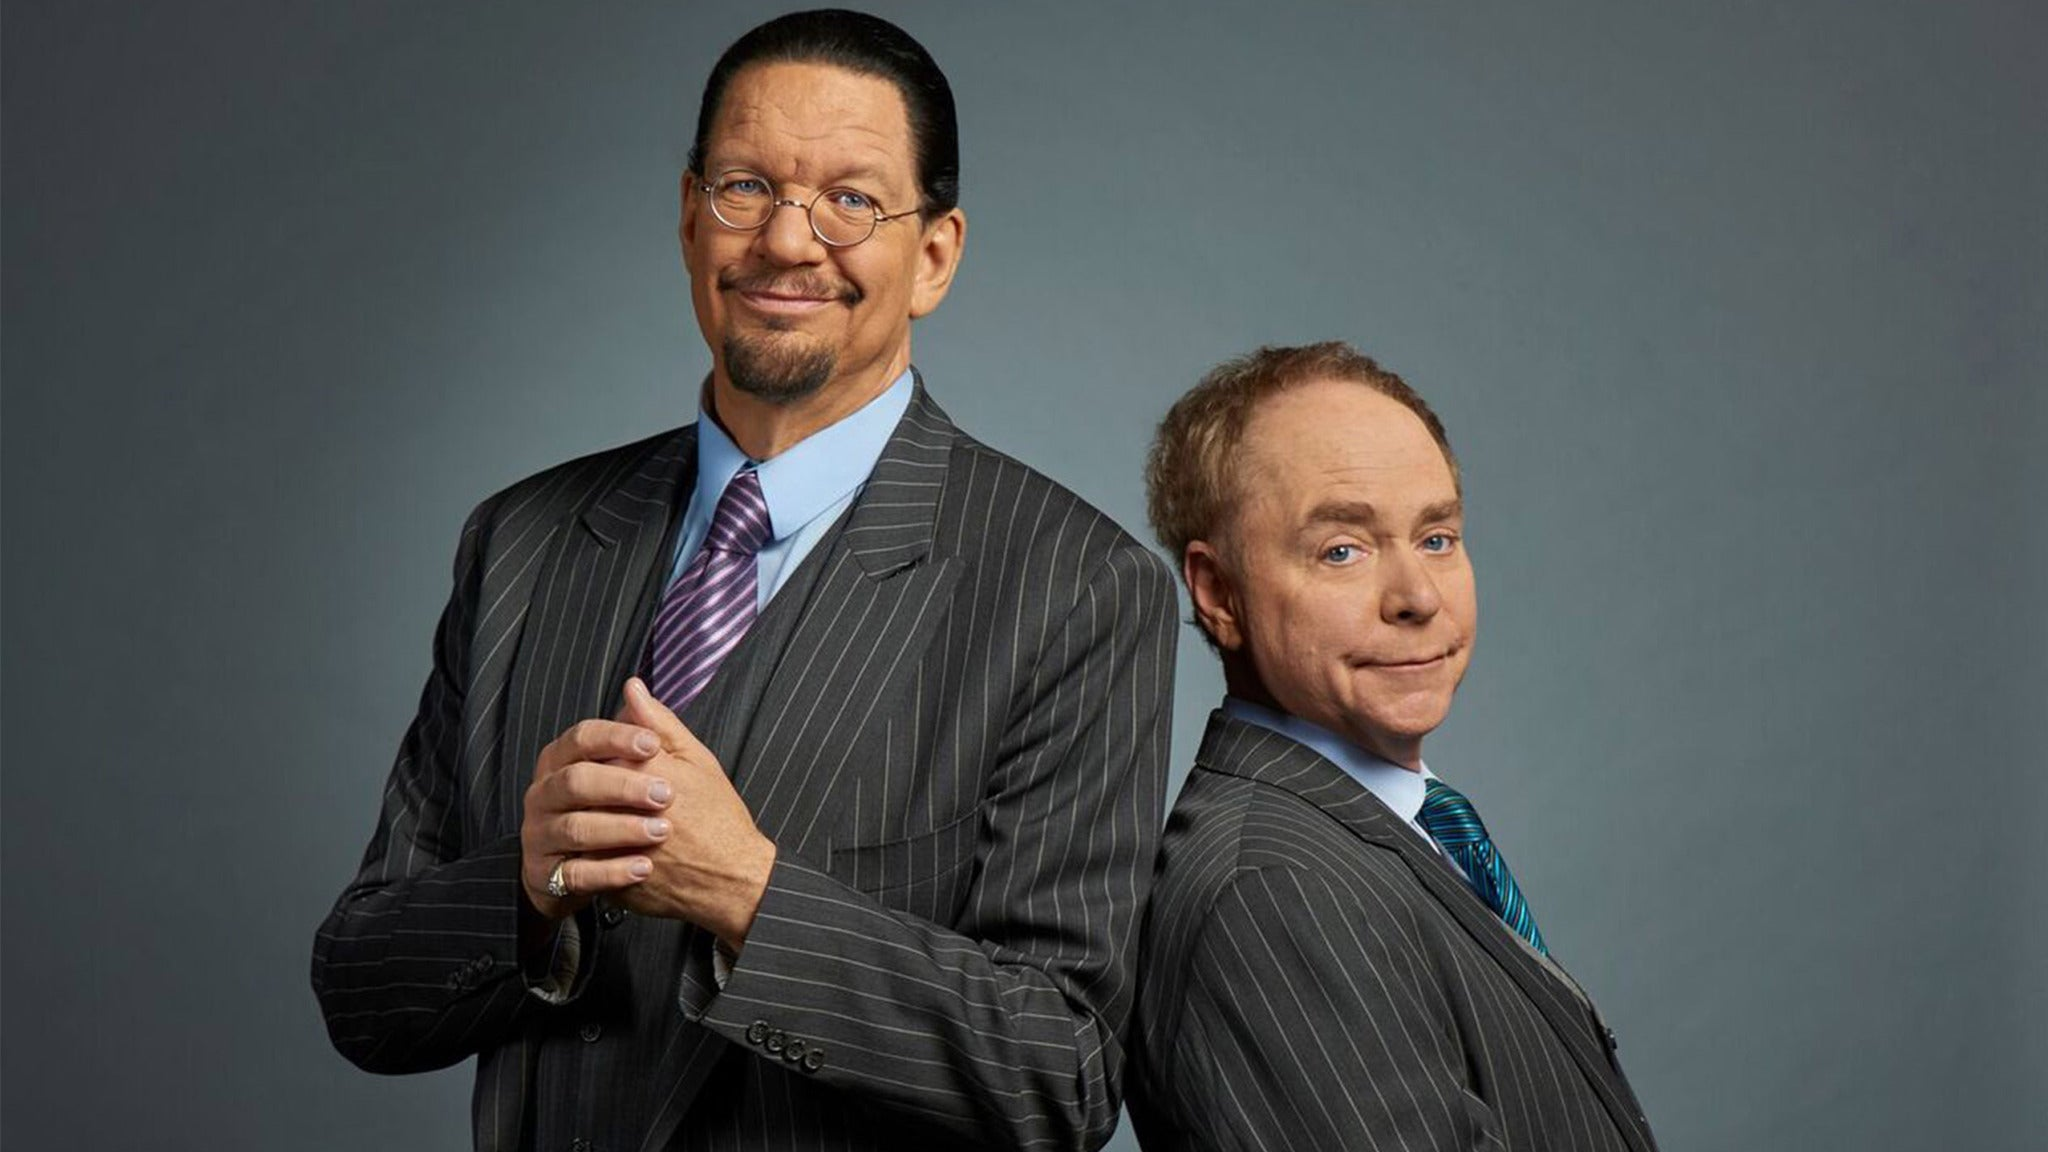 Penn & Teller at Harrah's Resort SoCal - The Events Center